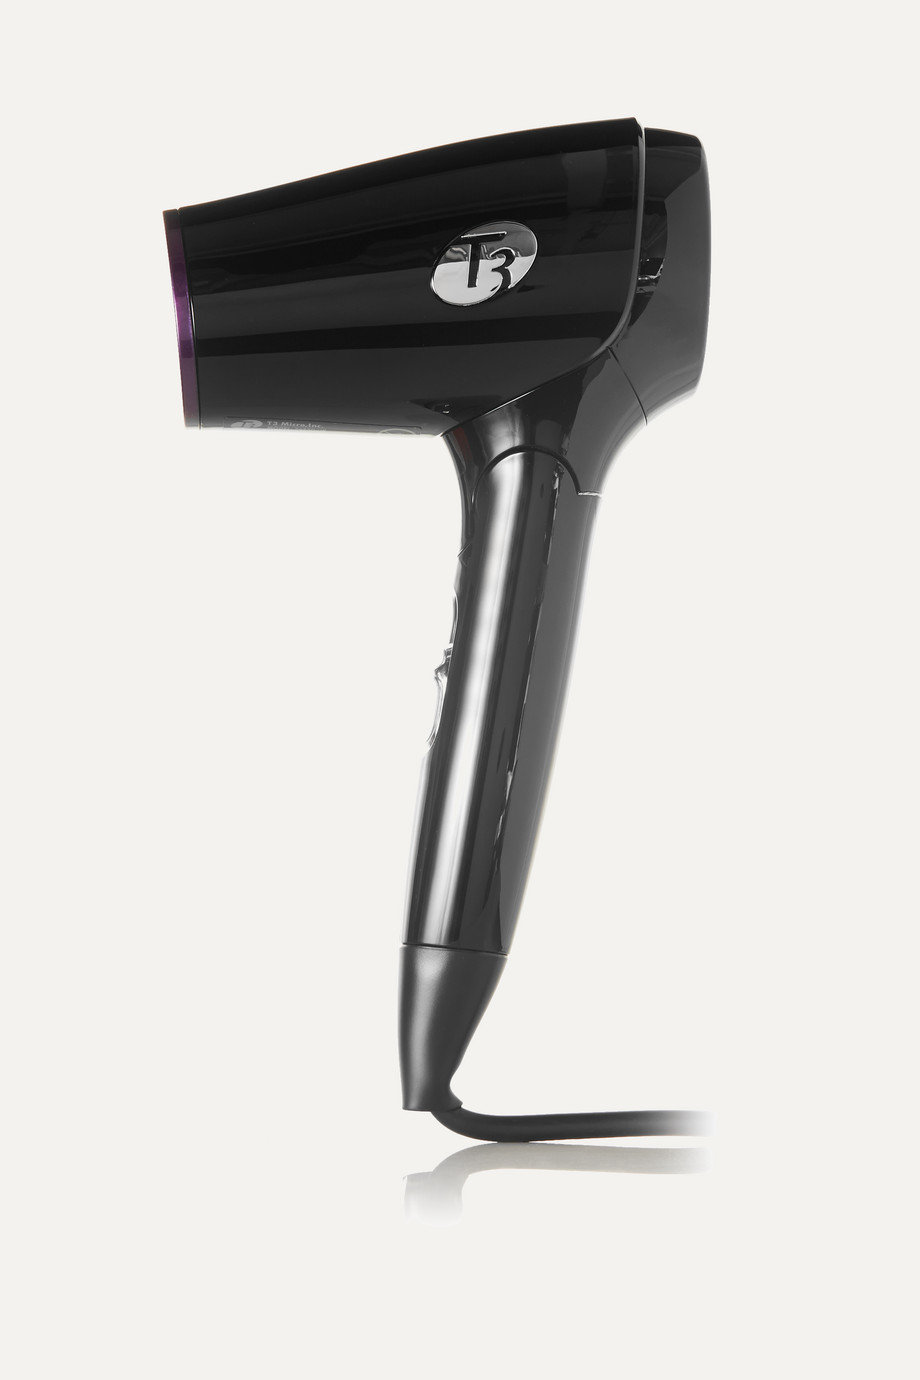 T3 Featherweight Compact Hairdryer